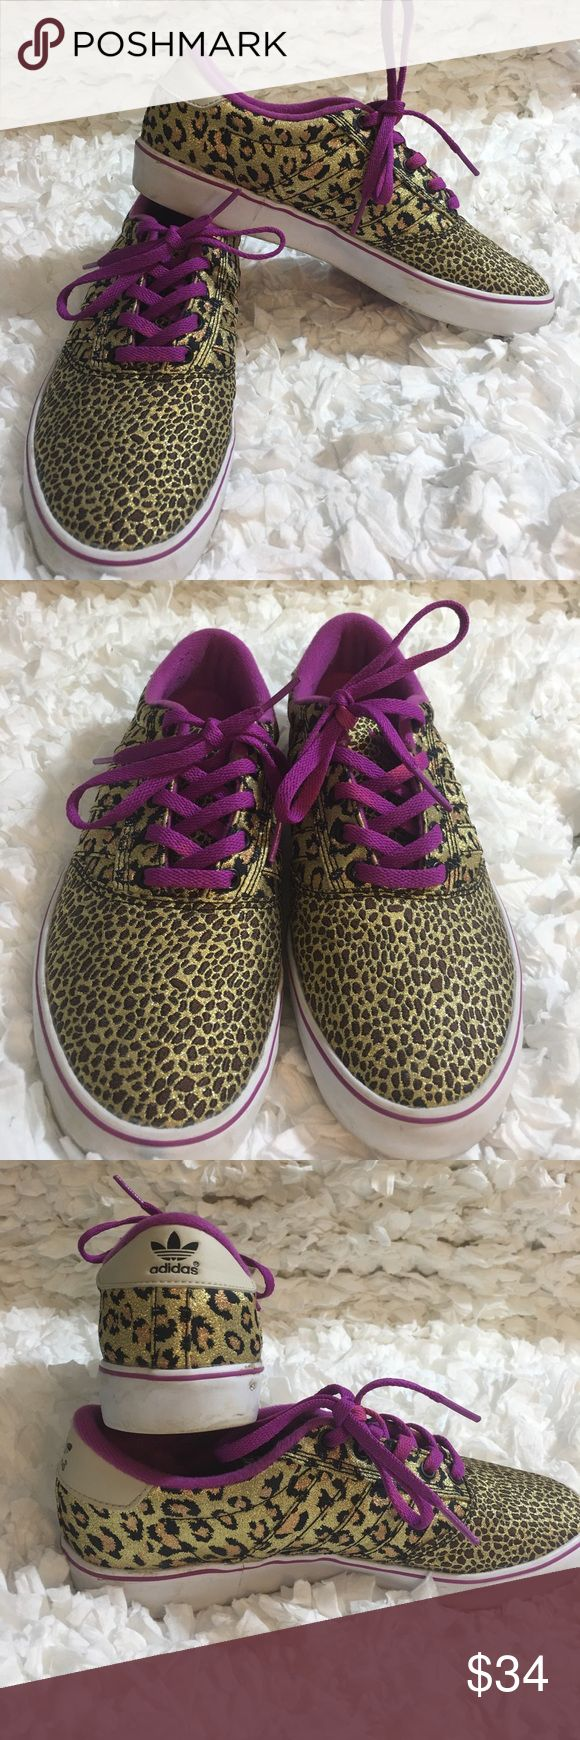 Adidas Leopard print sneakers size 7 1/2 Excellent condition Adidas shiny leopard print sneakers. Purple shoe strings. One shoe string has Light area of purple. Please look at picture prior to purchase. Unsure if this is the way shoestring came. Shoe in excellent condition. adidas Shoes Sneakers